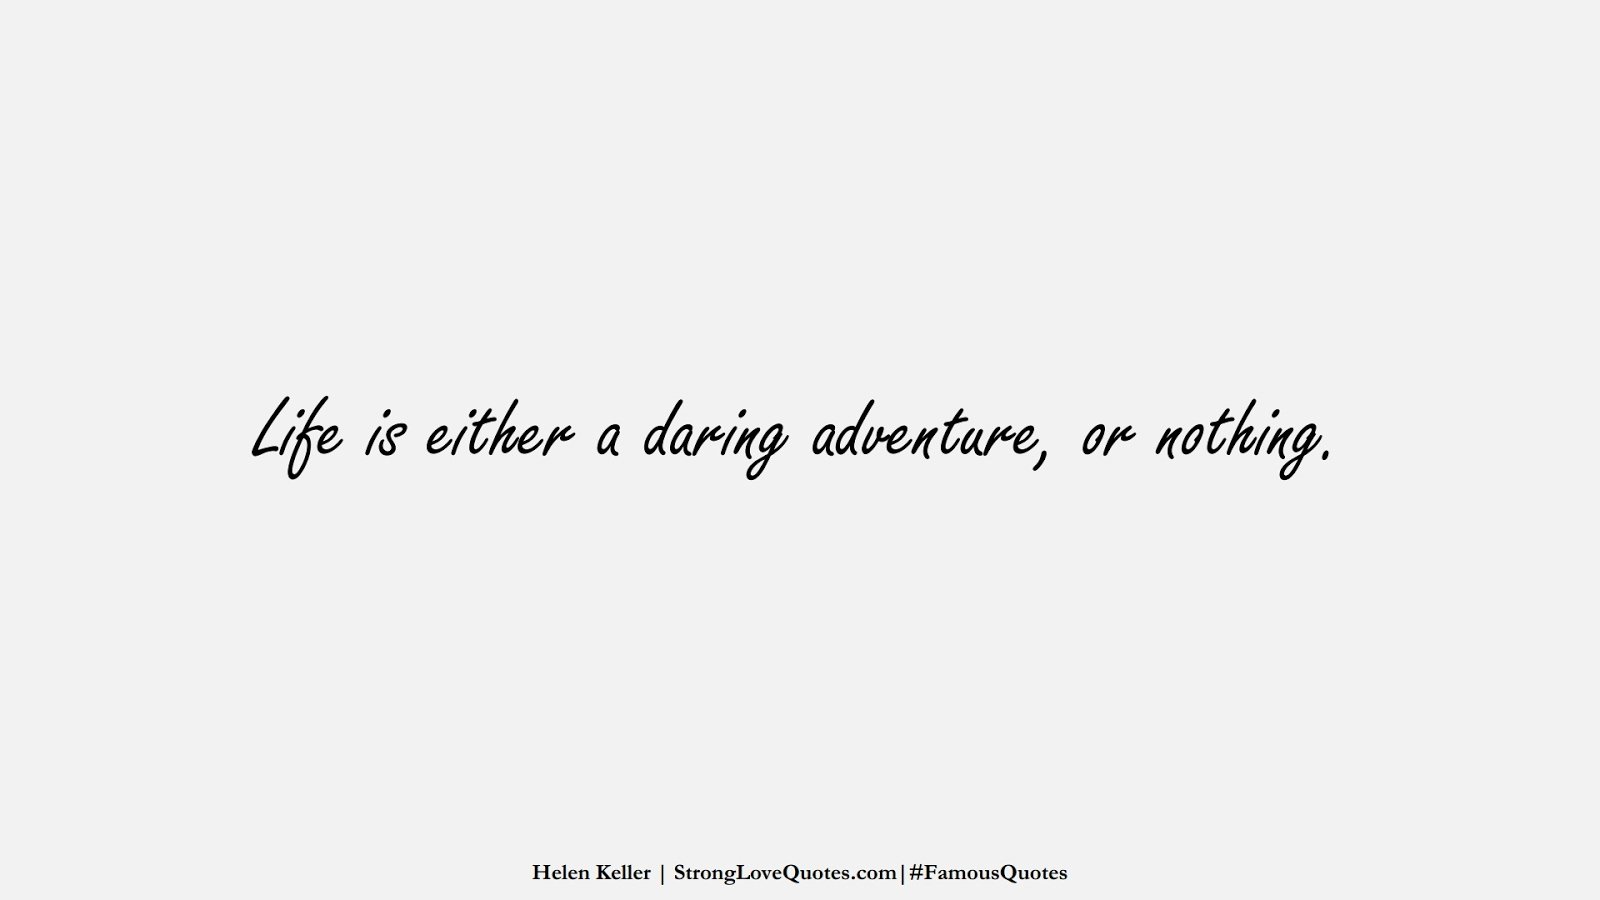 Life is either a daring adventure, or nothing. (Helen Keller);  #FamousQuotes